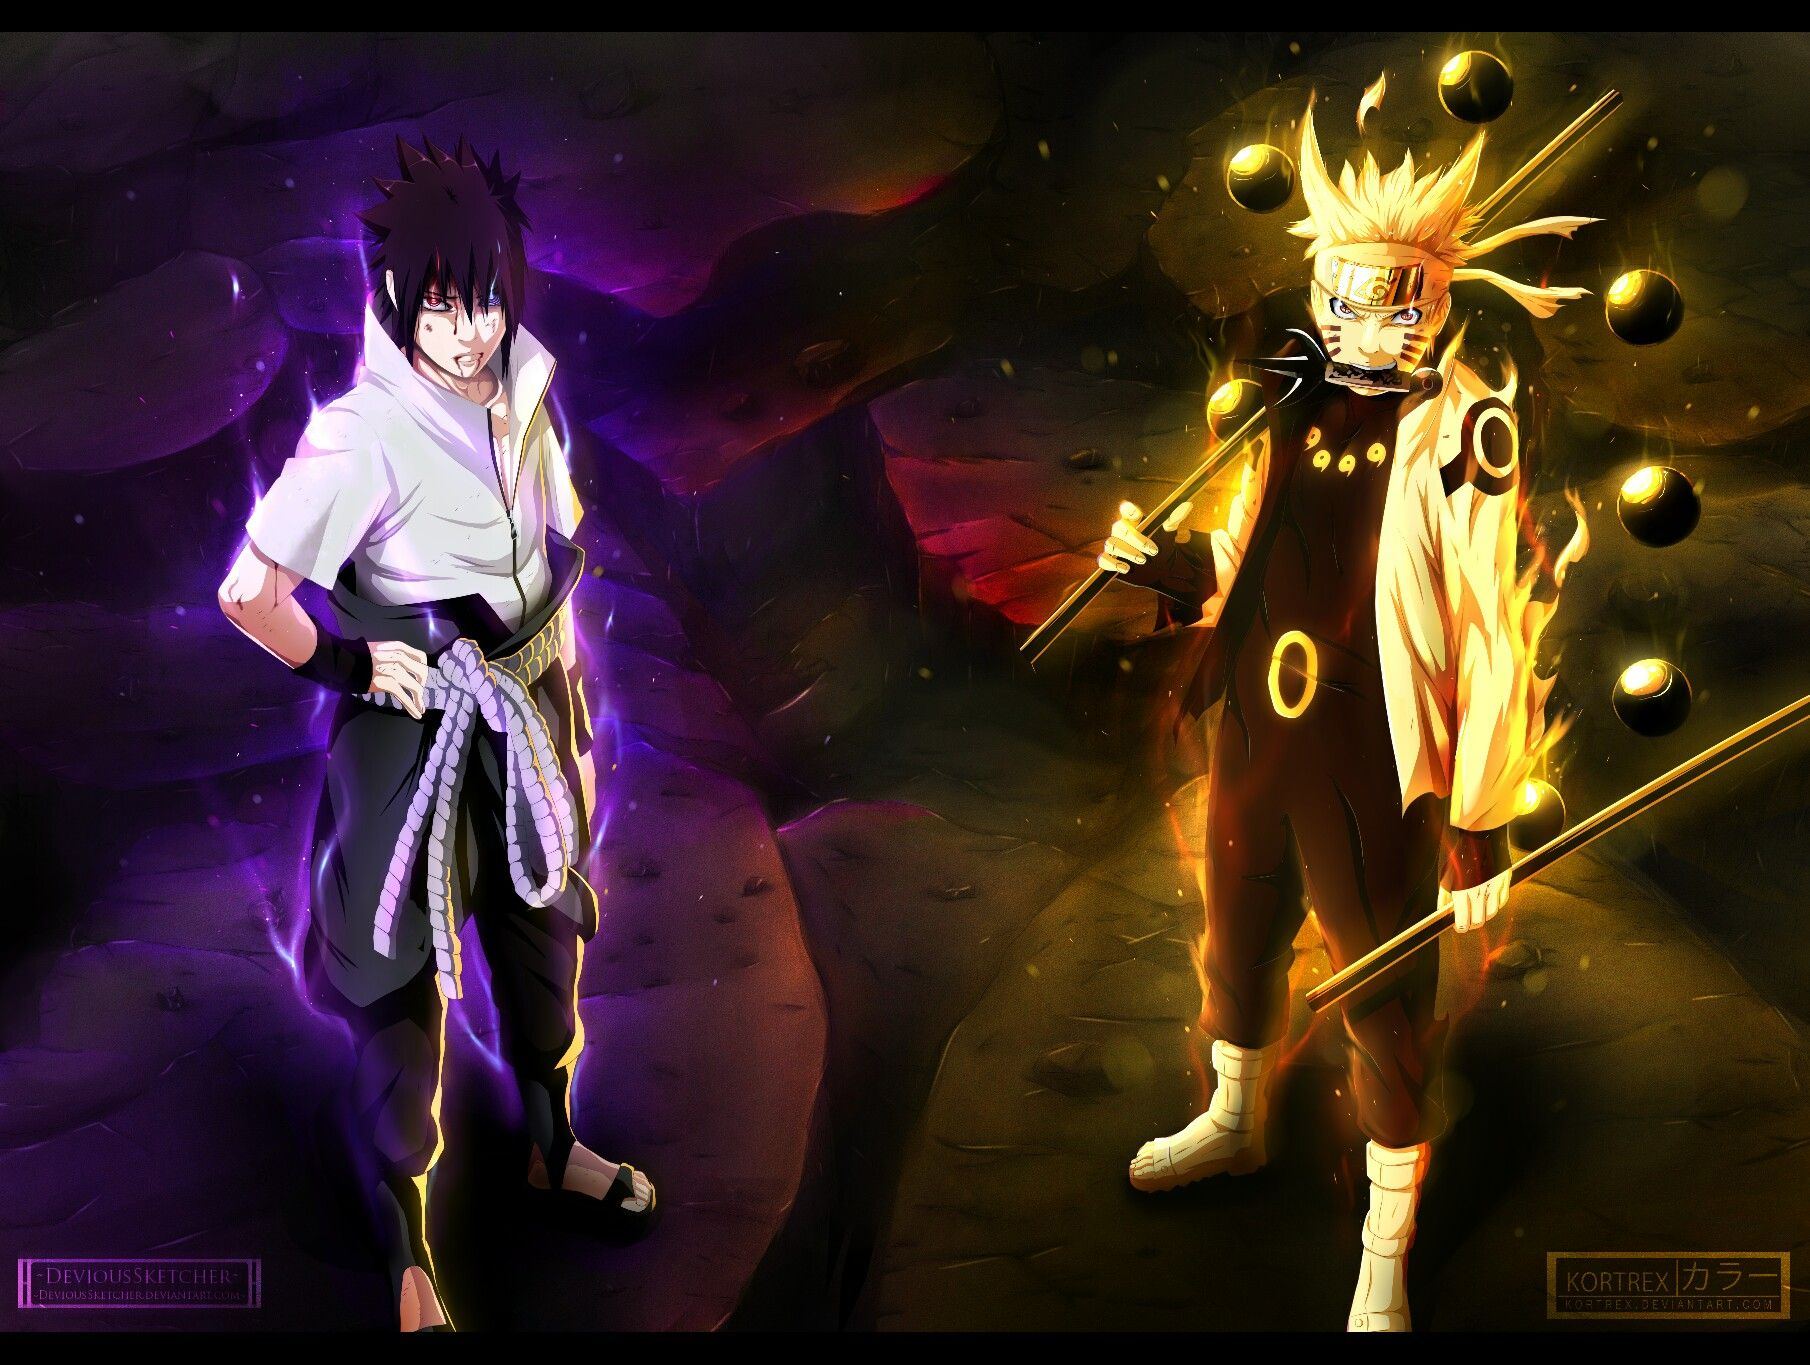 Naruto And Sasuke Wallpaper Naruto Wallpaper Naruto Vs Sasuke Naruto Sage